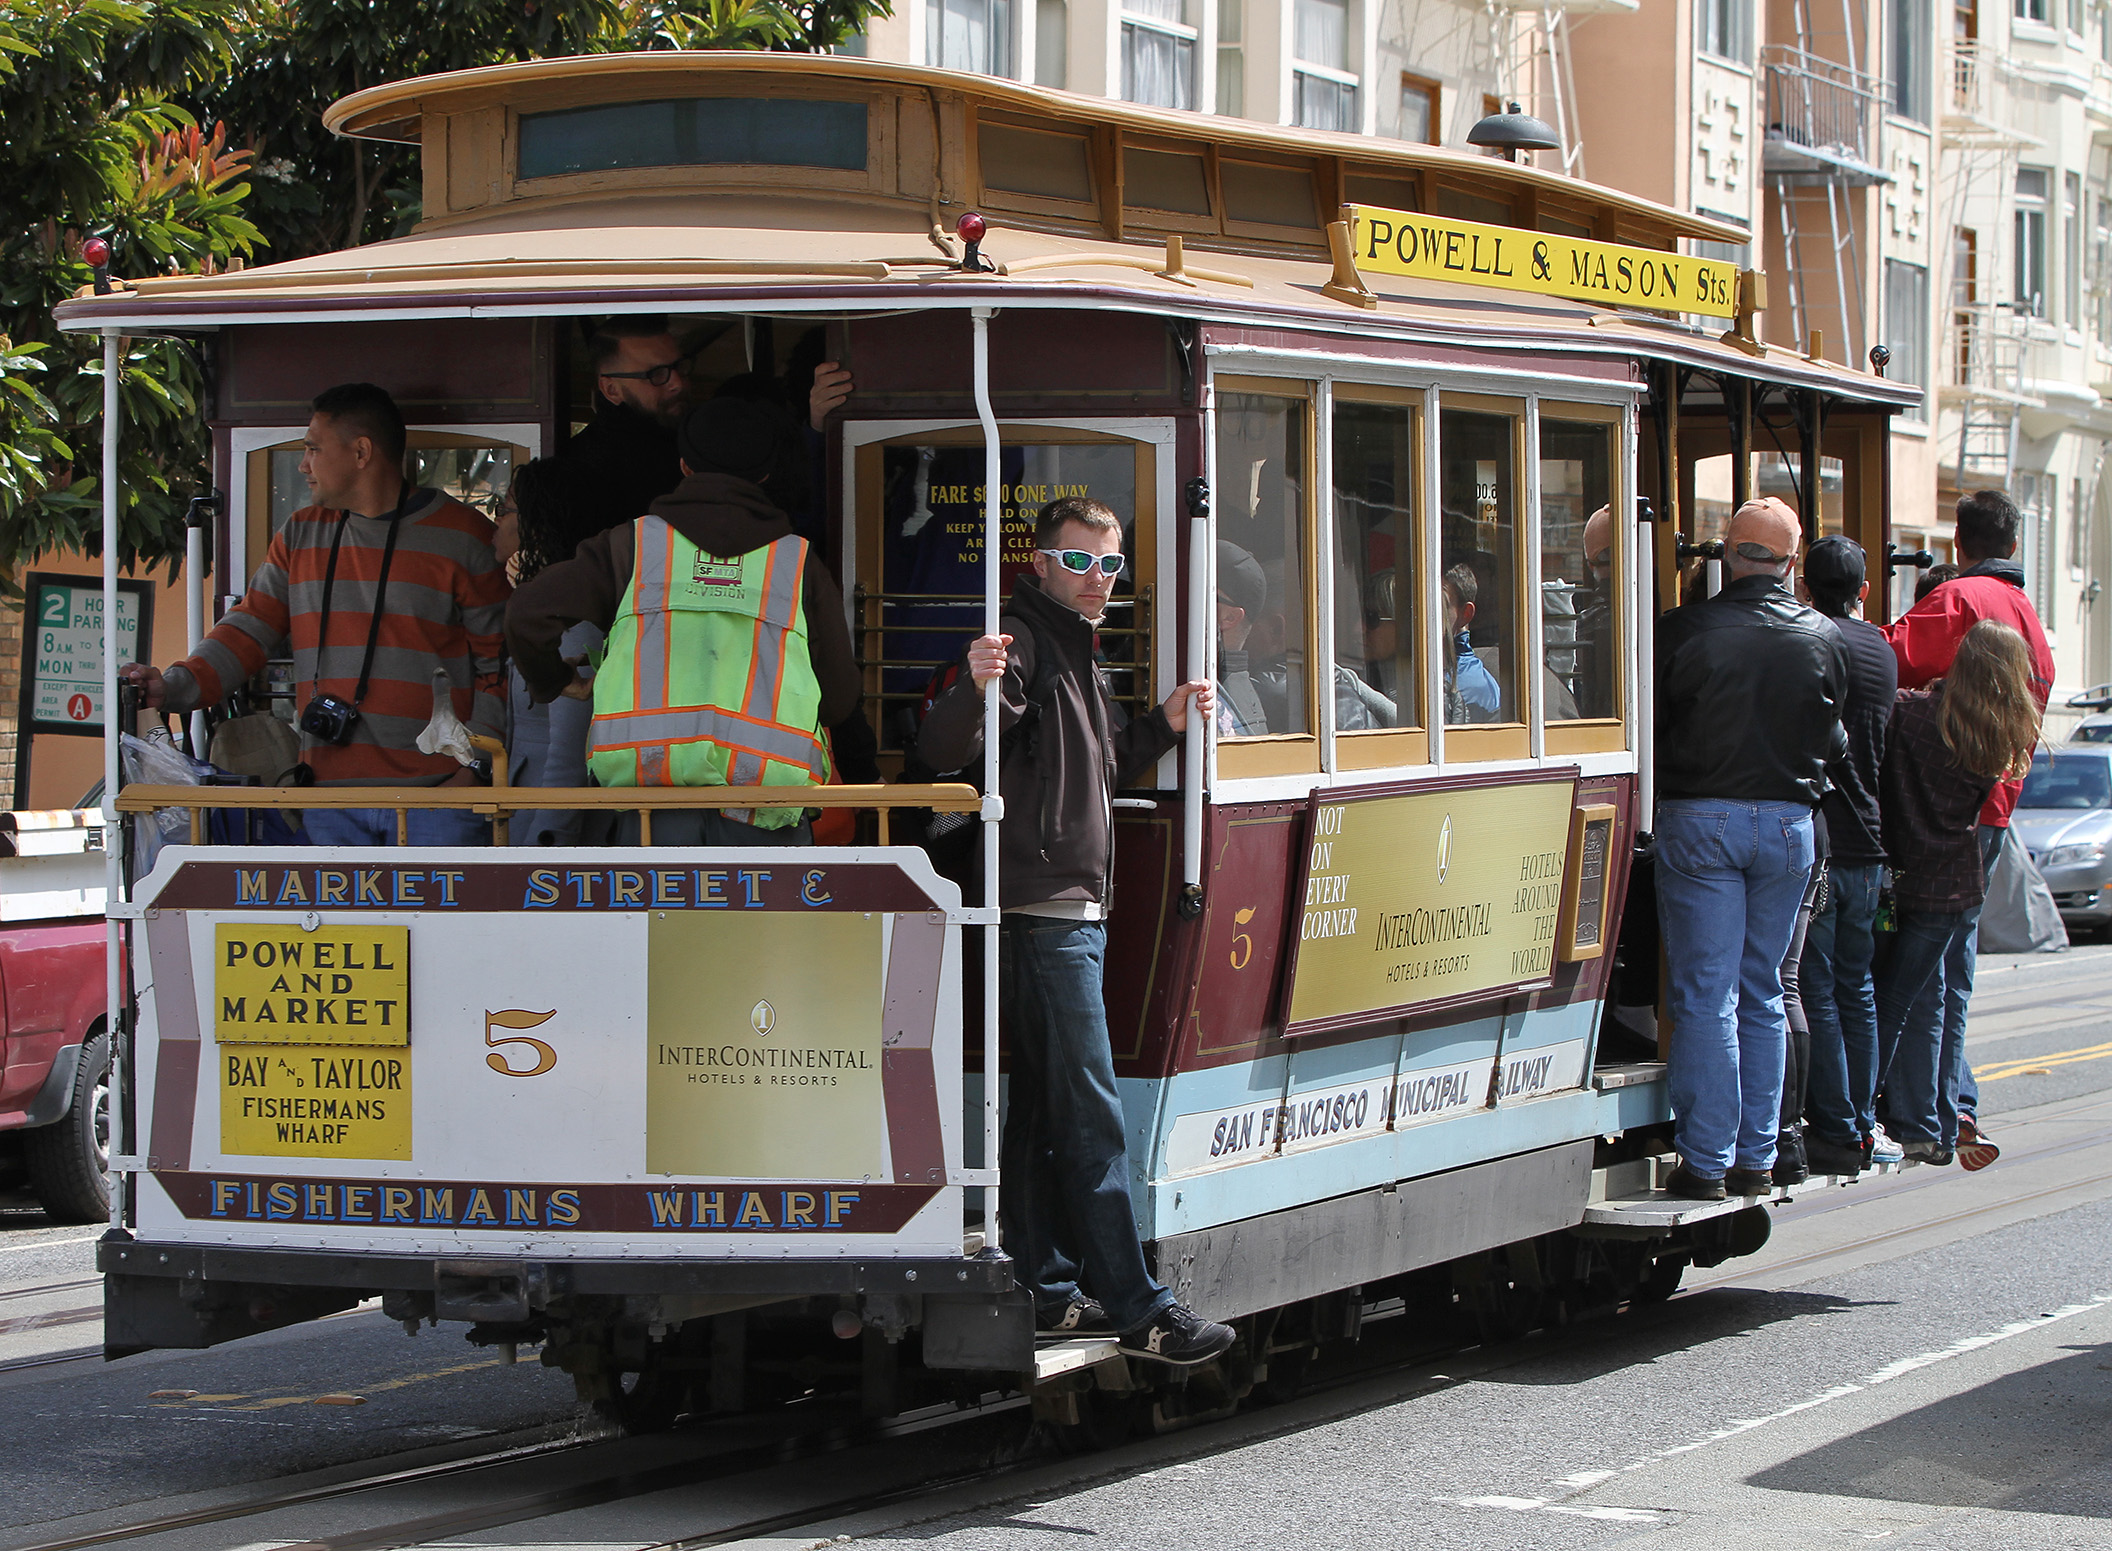 Cable cars that run along Powell Street are a San Francisco institution.